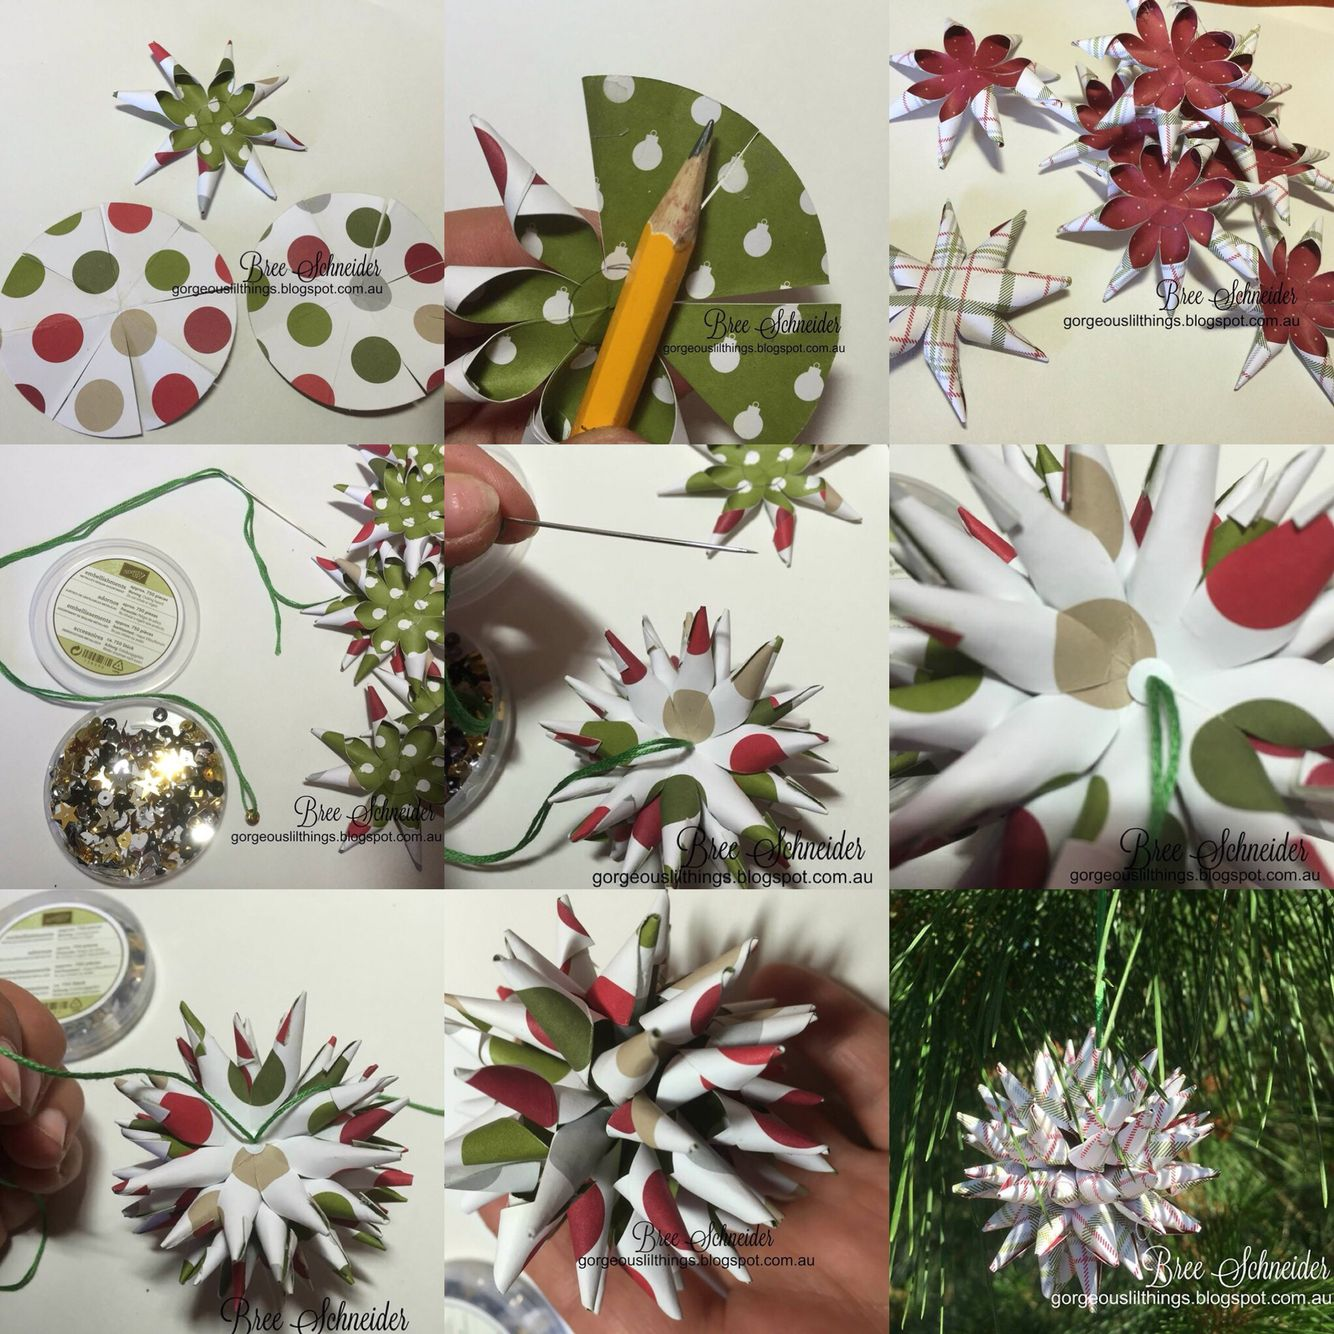 Diy Polish Star Ornament: Step By Step DIY Polish Star Christmas Ornaments